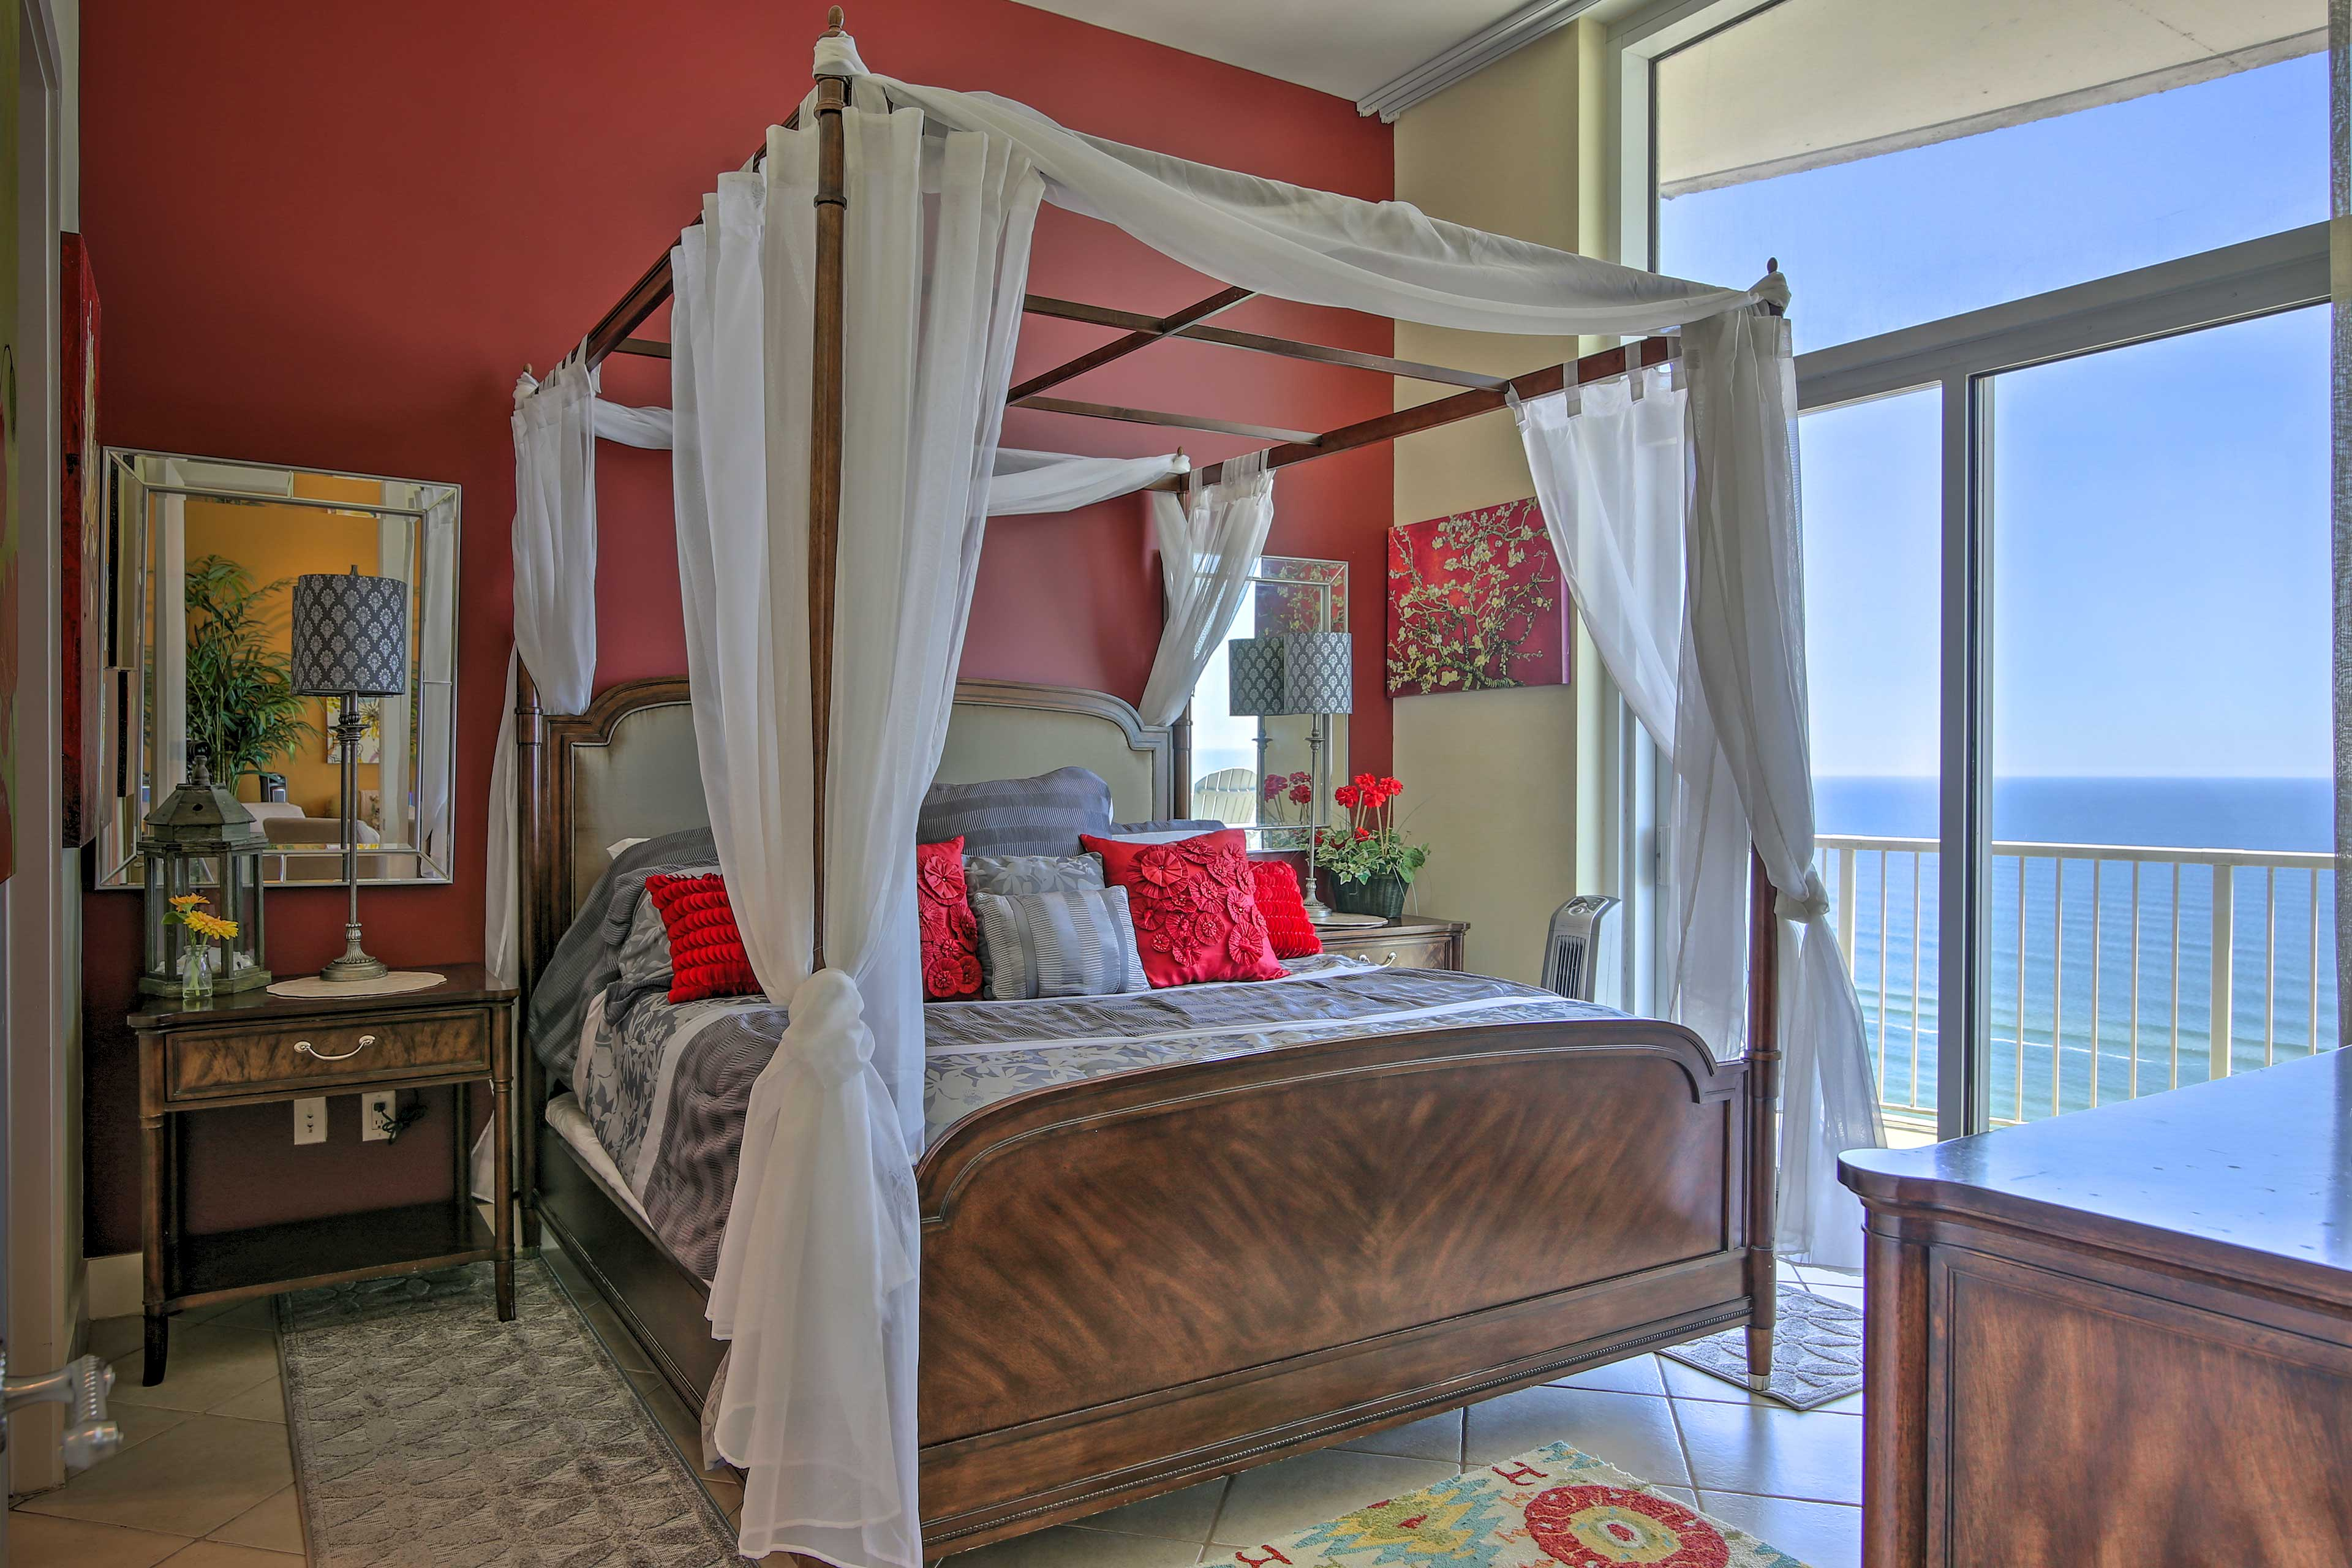 Find your inner peace in this gorgeous master bedroom with a king bed.